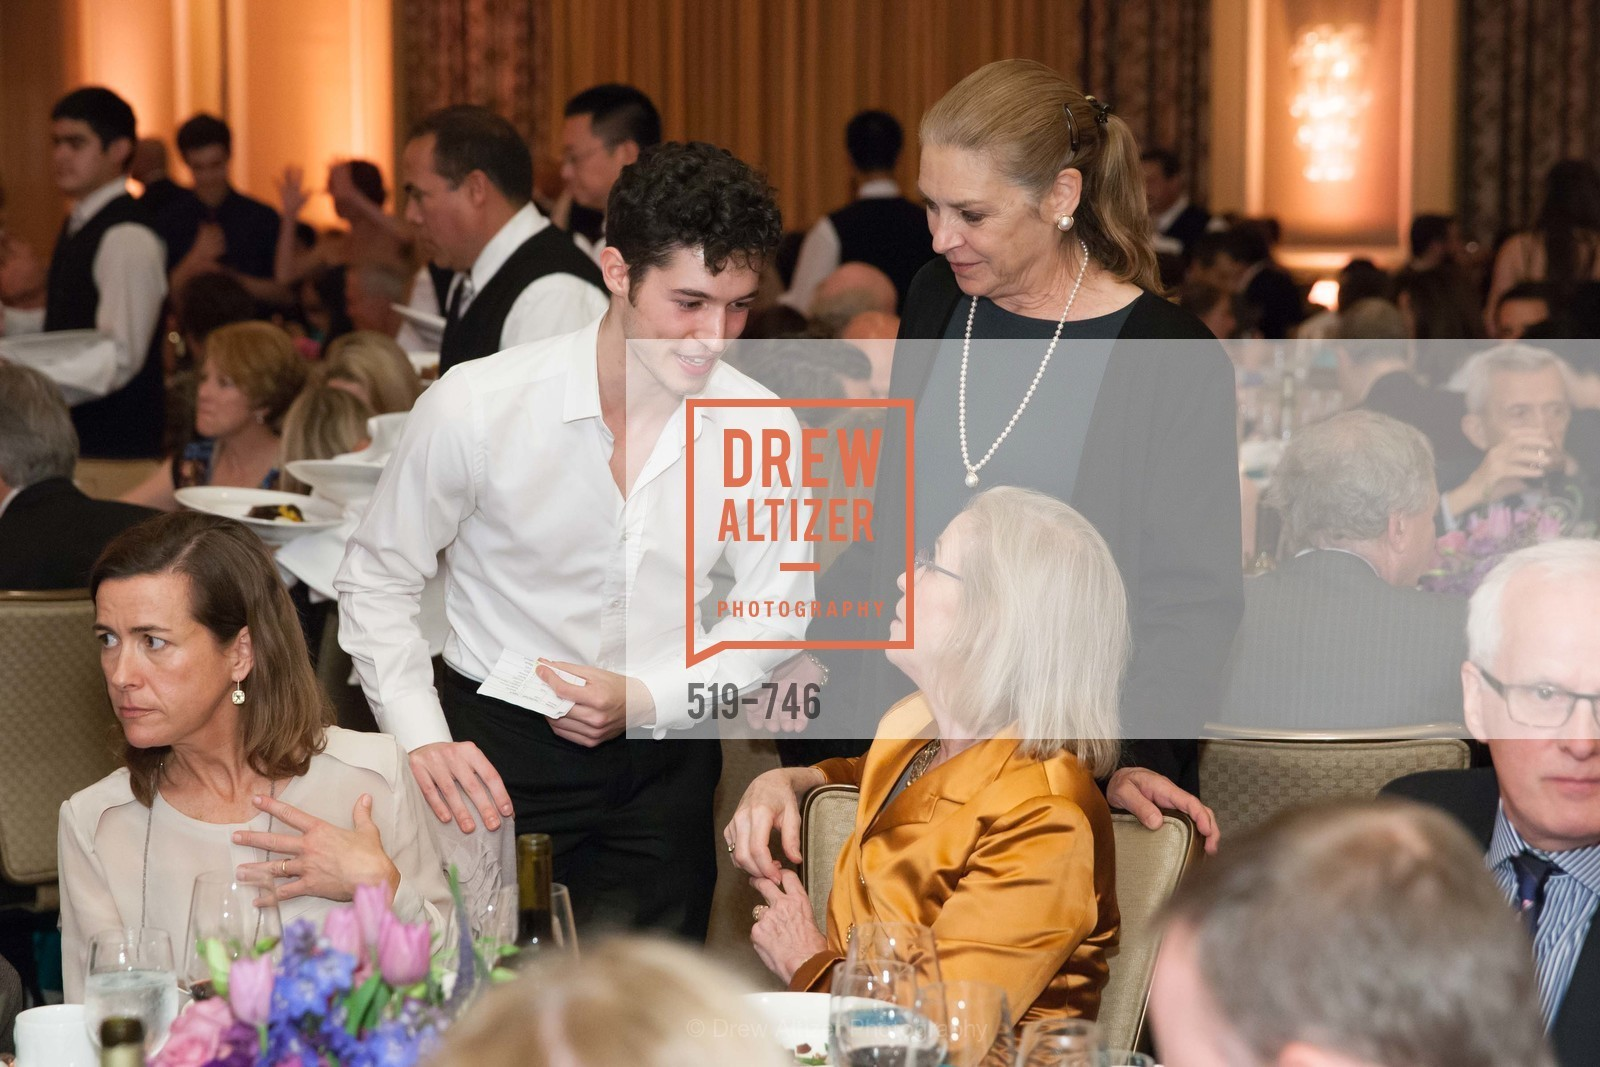 Extras, San Francisco BALLET STUDENTS Showcase, May 21st, 2015, Photo,Drew Altizer, Drew Altizer Photography, full-service agency, private events, San Francisco photographer, photographer california